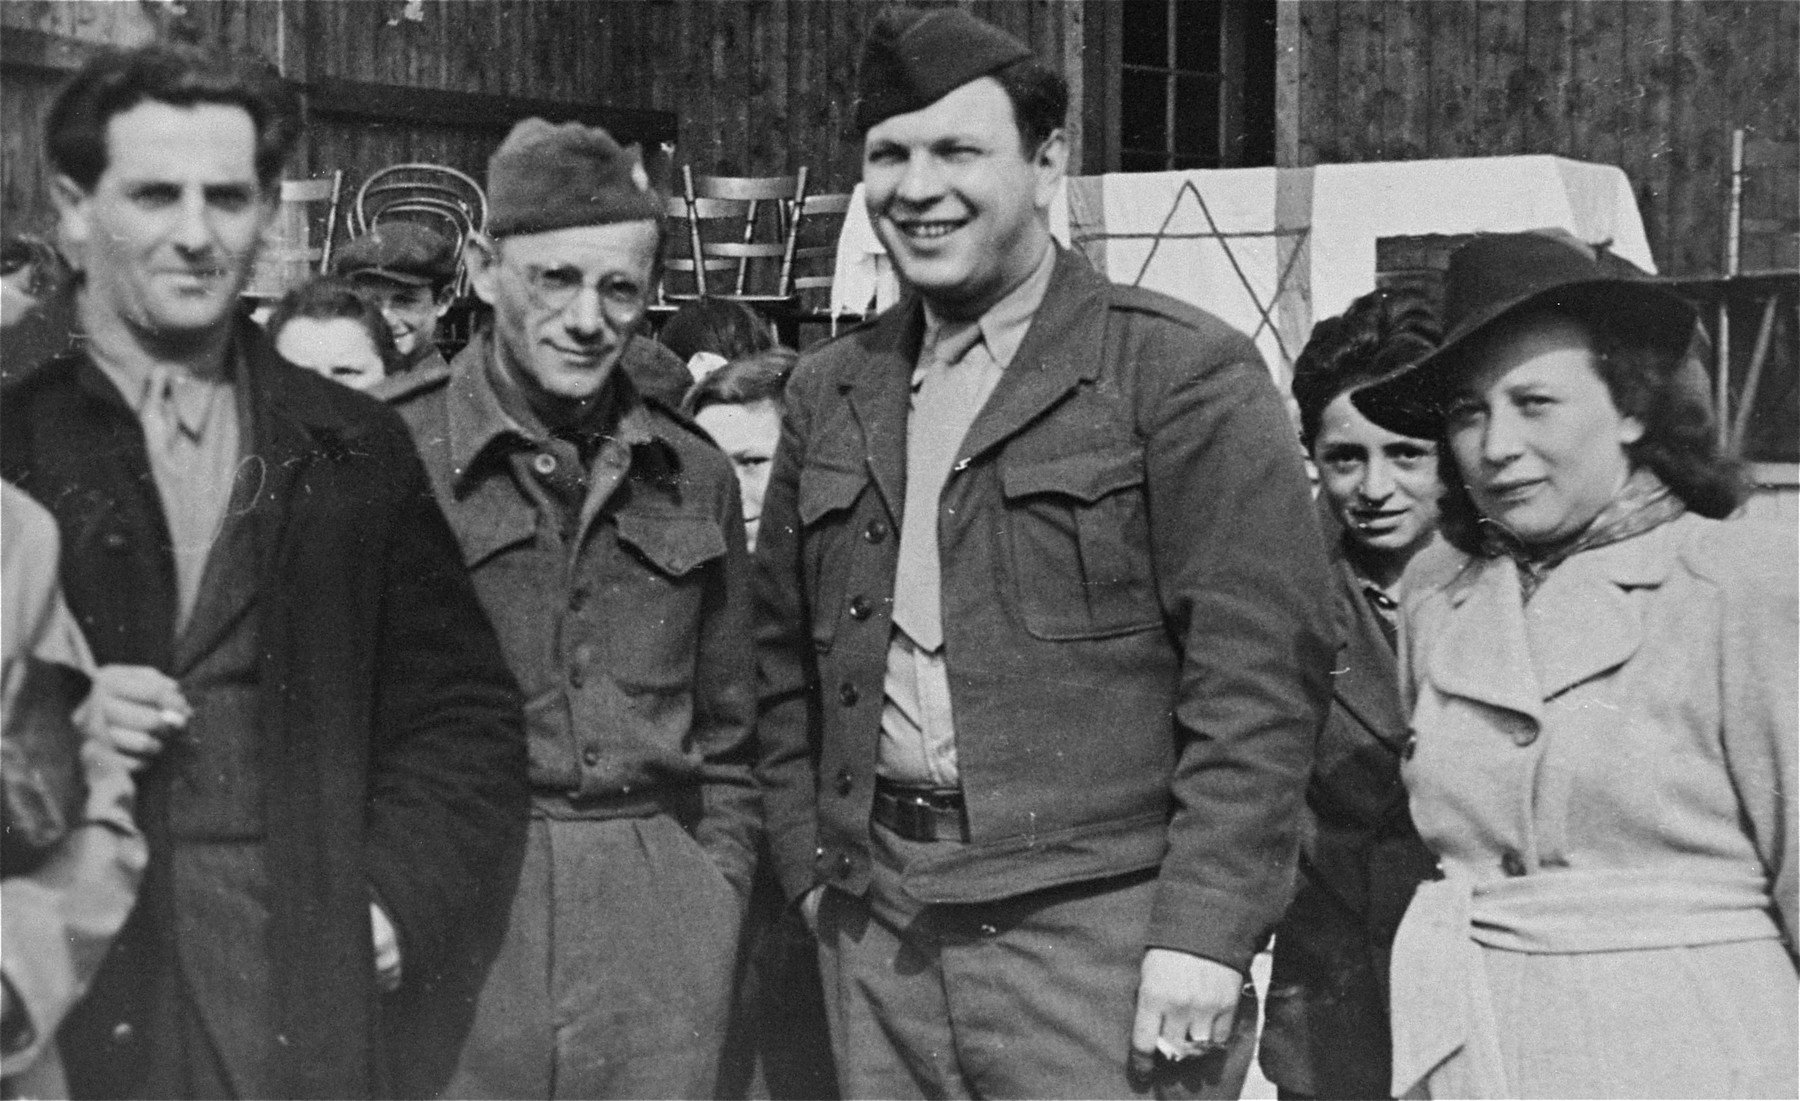 Neu Freimann director Saul Sorrin (third from the left) poses with other DP camp leaders in front of an outdoor stage used for public meetings at the Neu Freimann displaced persons camp.